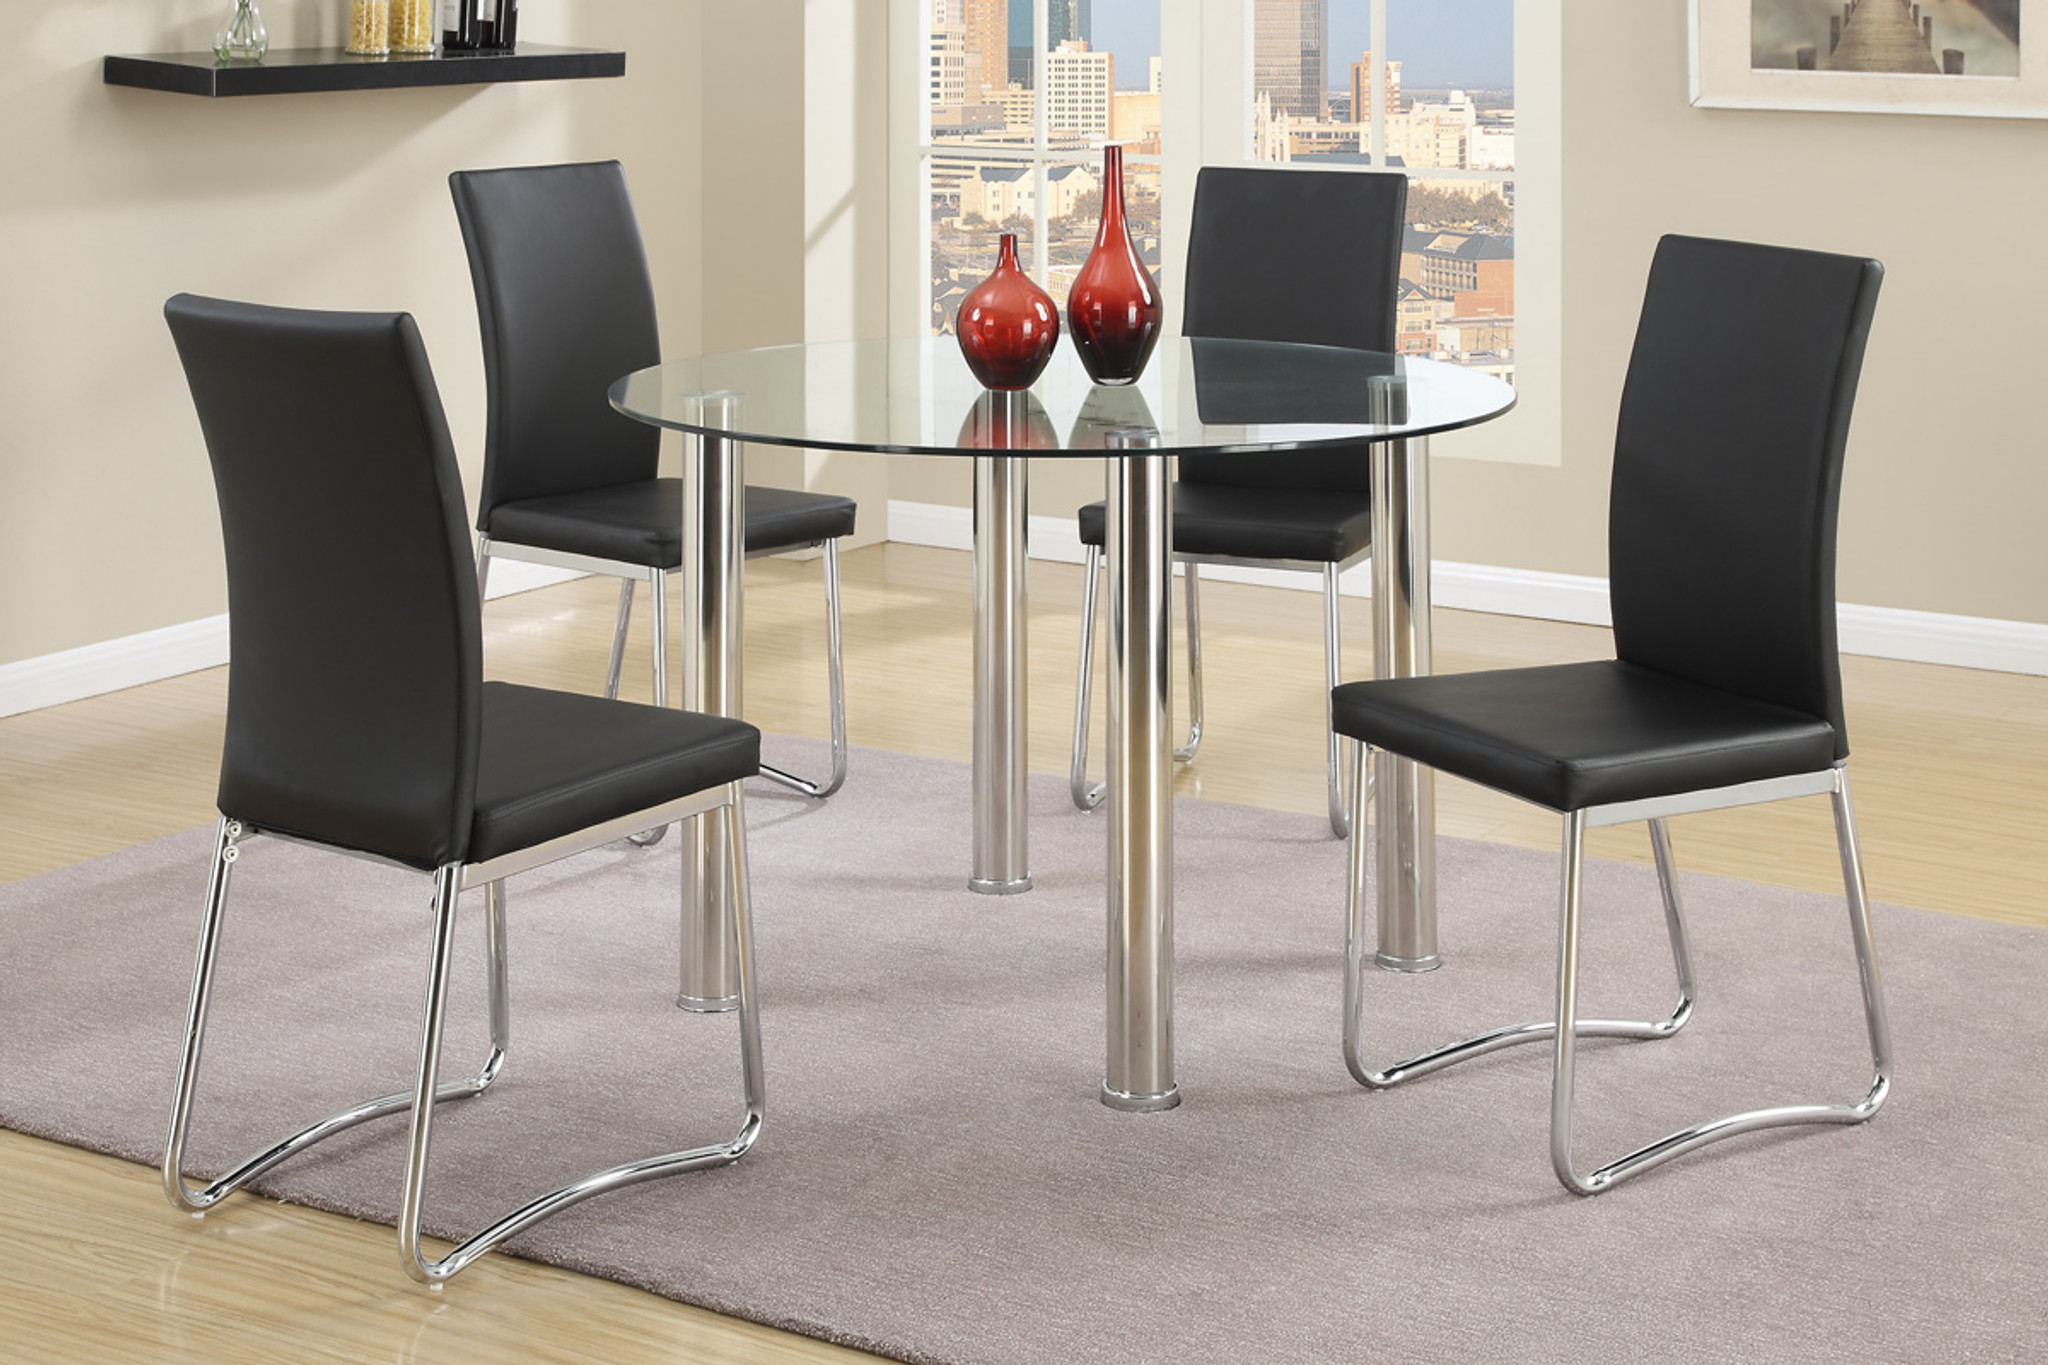 Picture of: 5 Pcs Modern Round Dining Table Set In Black Km Home Furniture